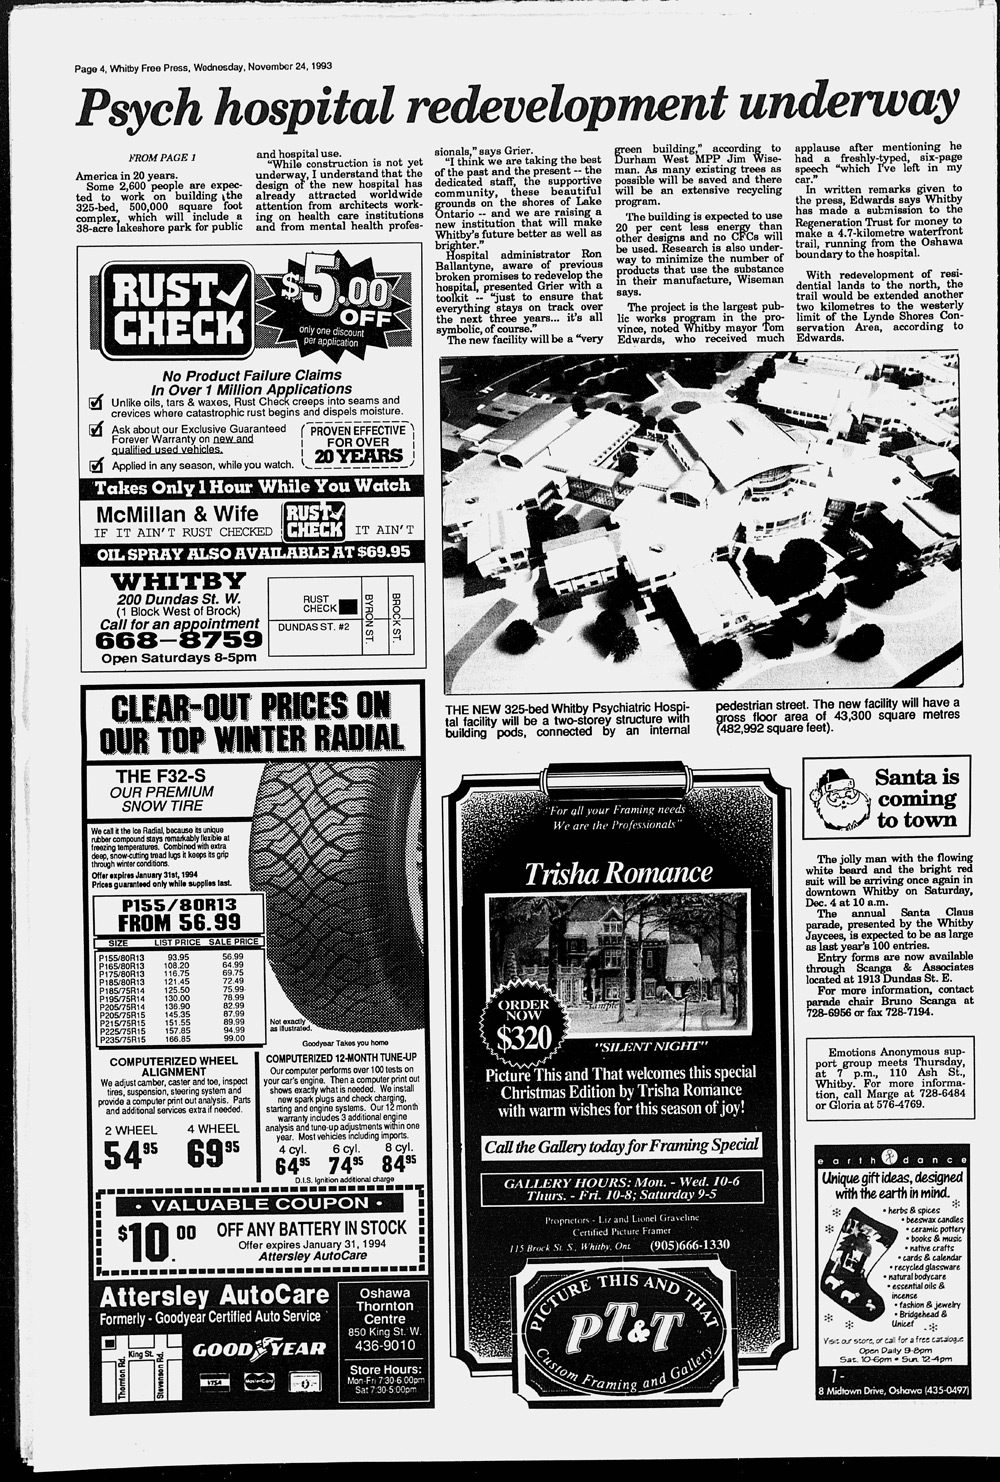 Whitby Free Press, 24 Nov 1993